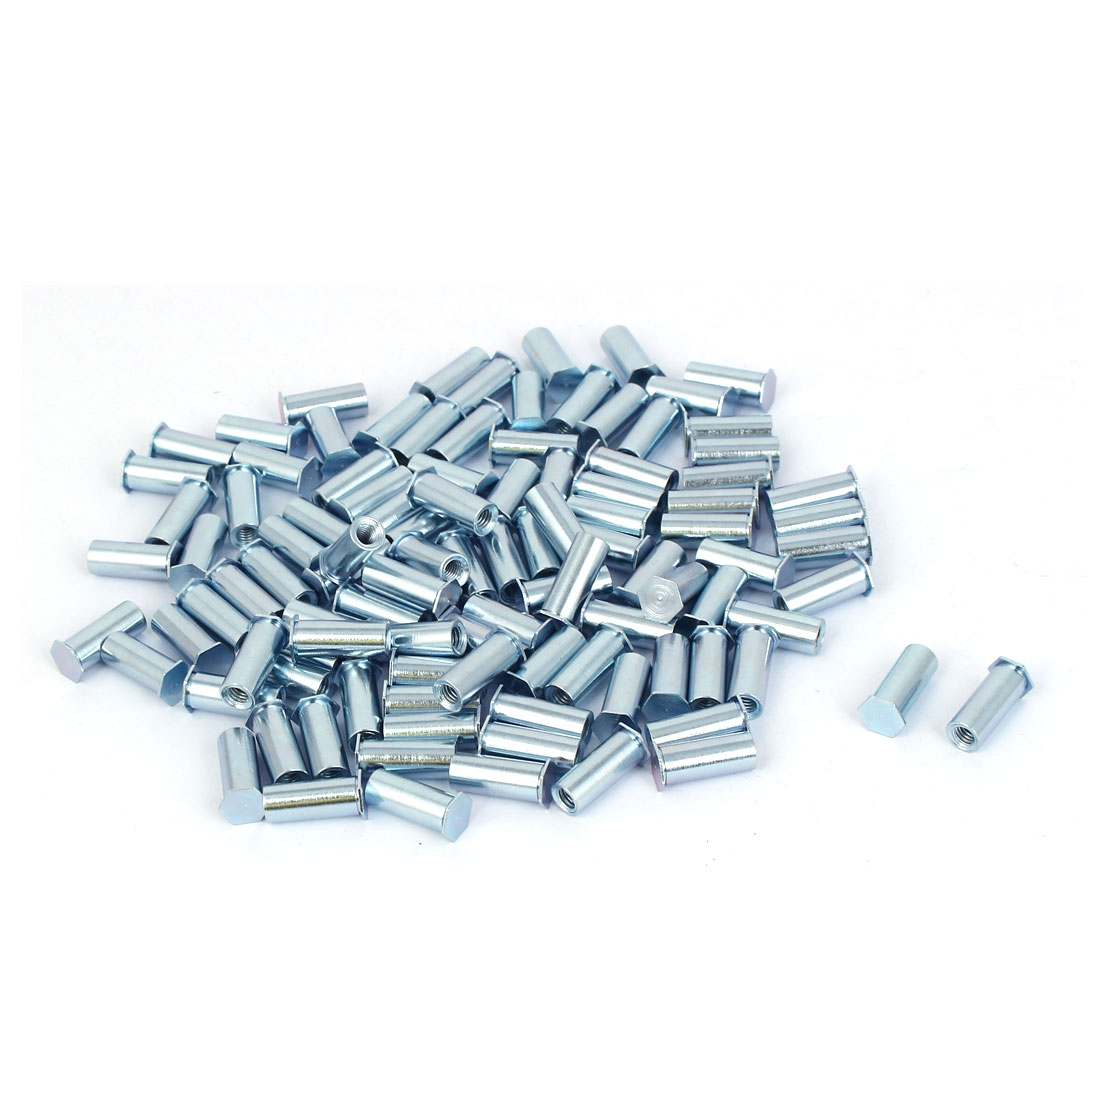 Carbon Steel Zinc Plated Hex Head Full Thread Self Clinching Standoff Silver Tone M4x15mm 100pcs